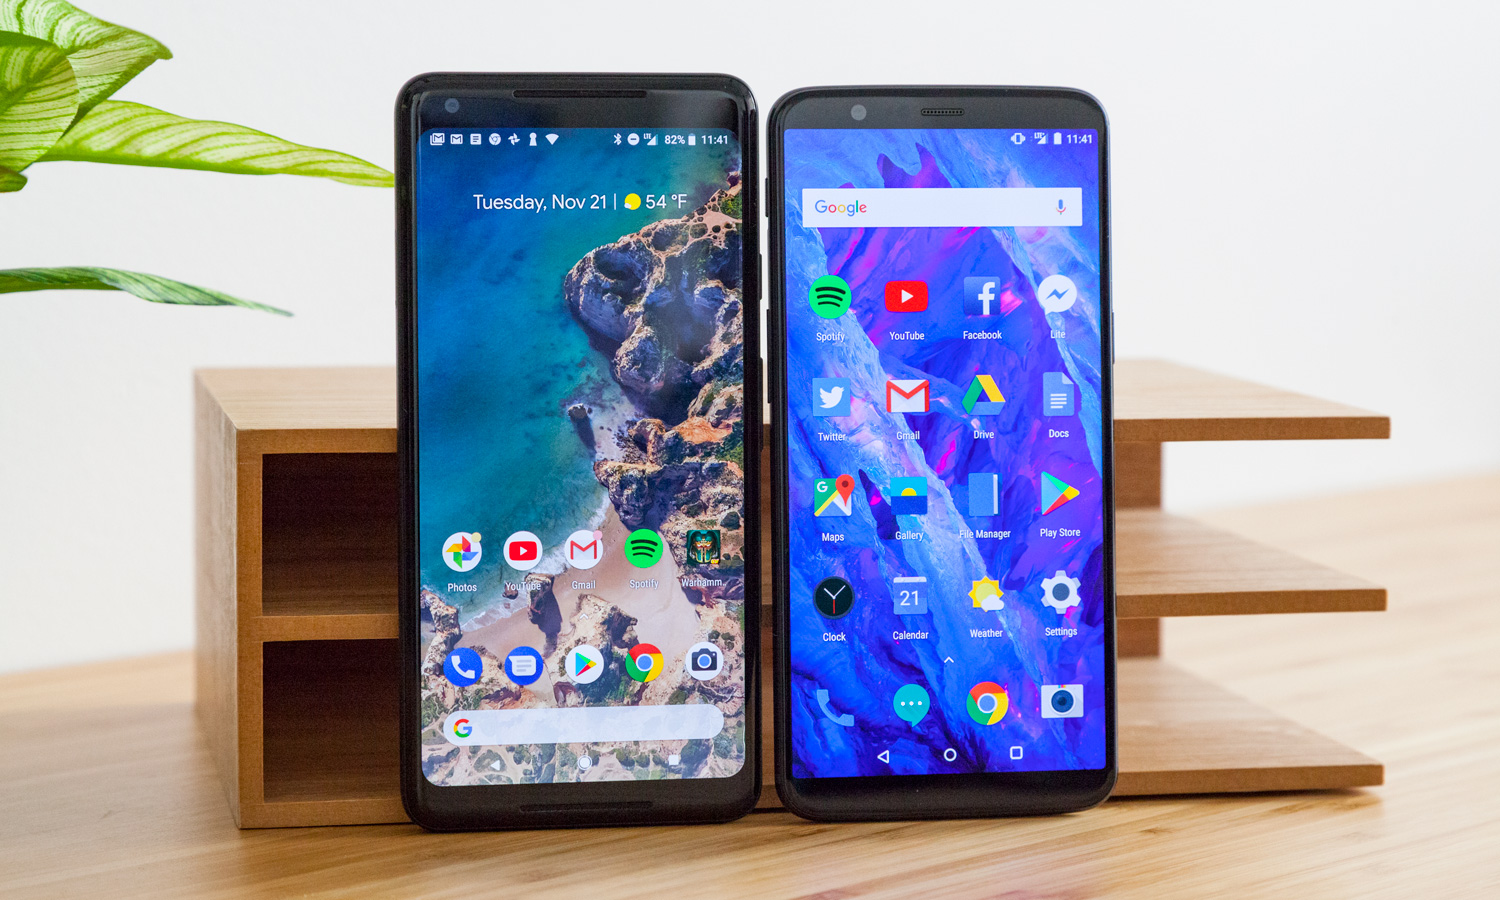 OnePlus 5T vs Pixel 2: Why OnePlus Wins | Tom's Guide